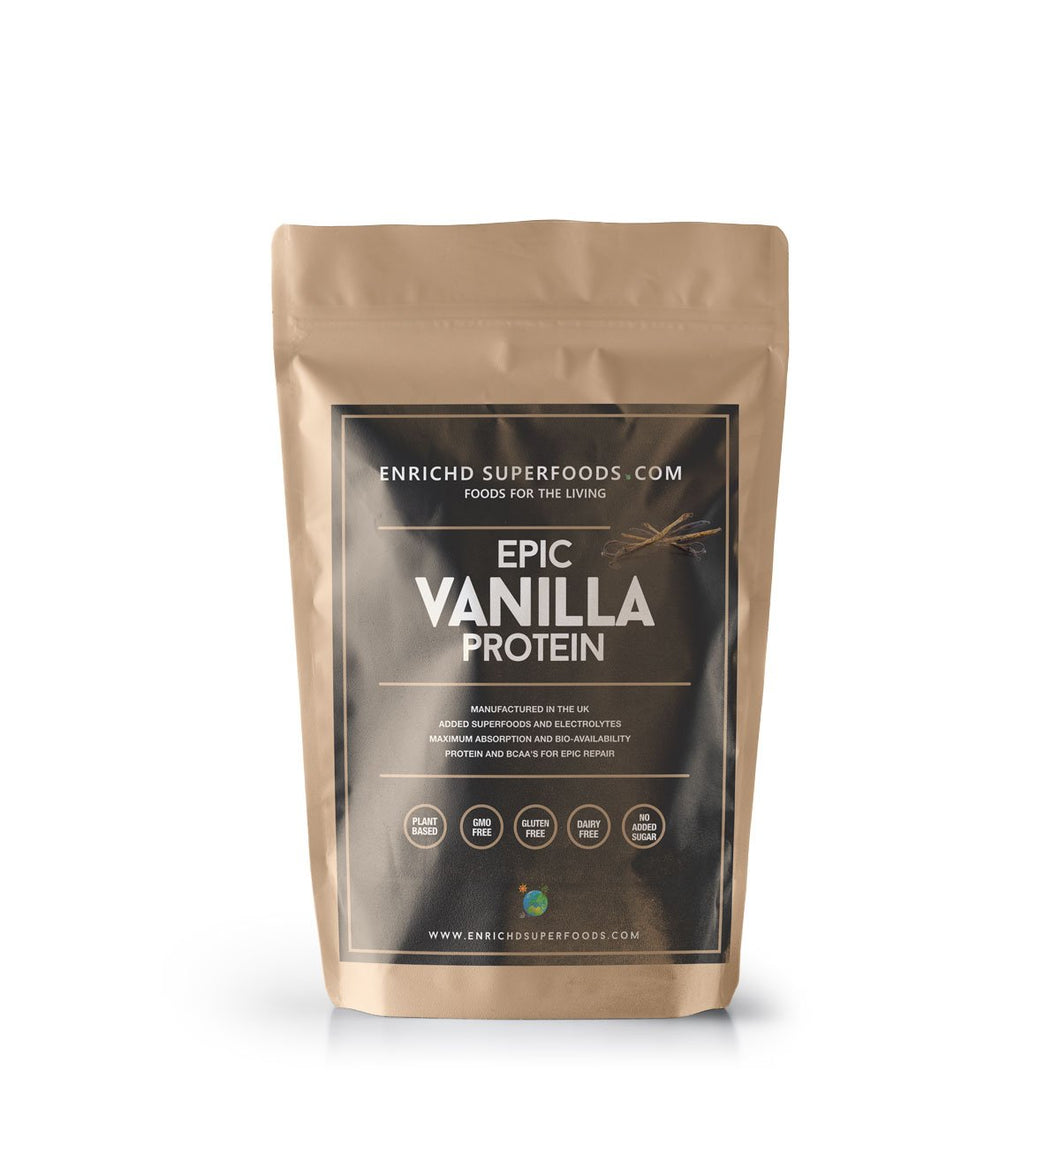 Epic Vanilla - Vegan Protein Powder